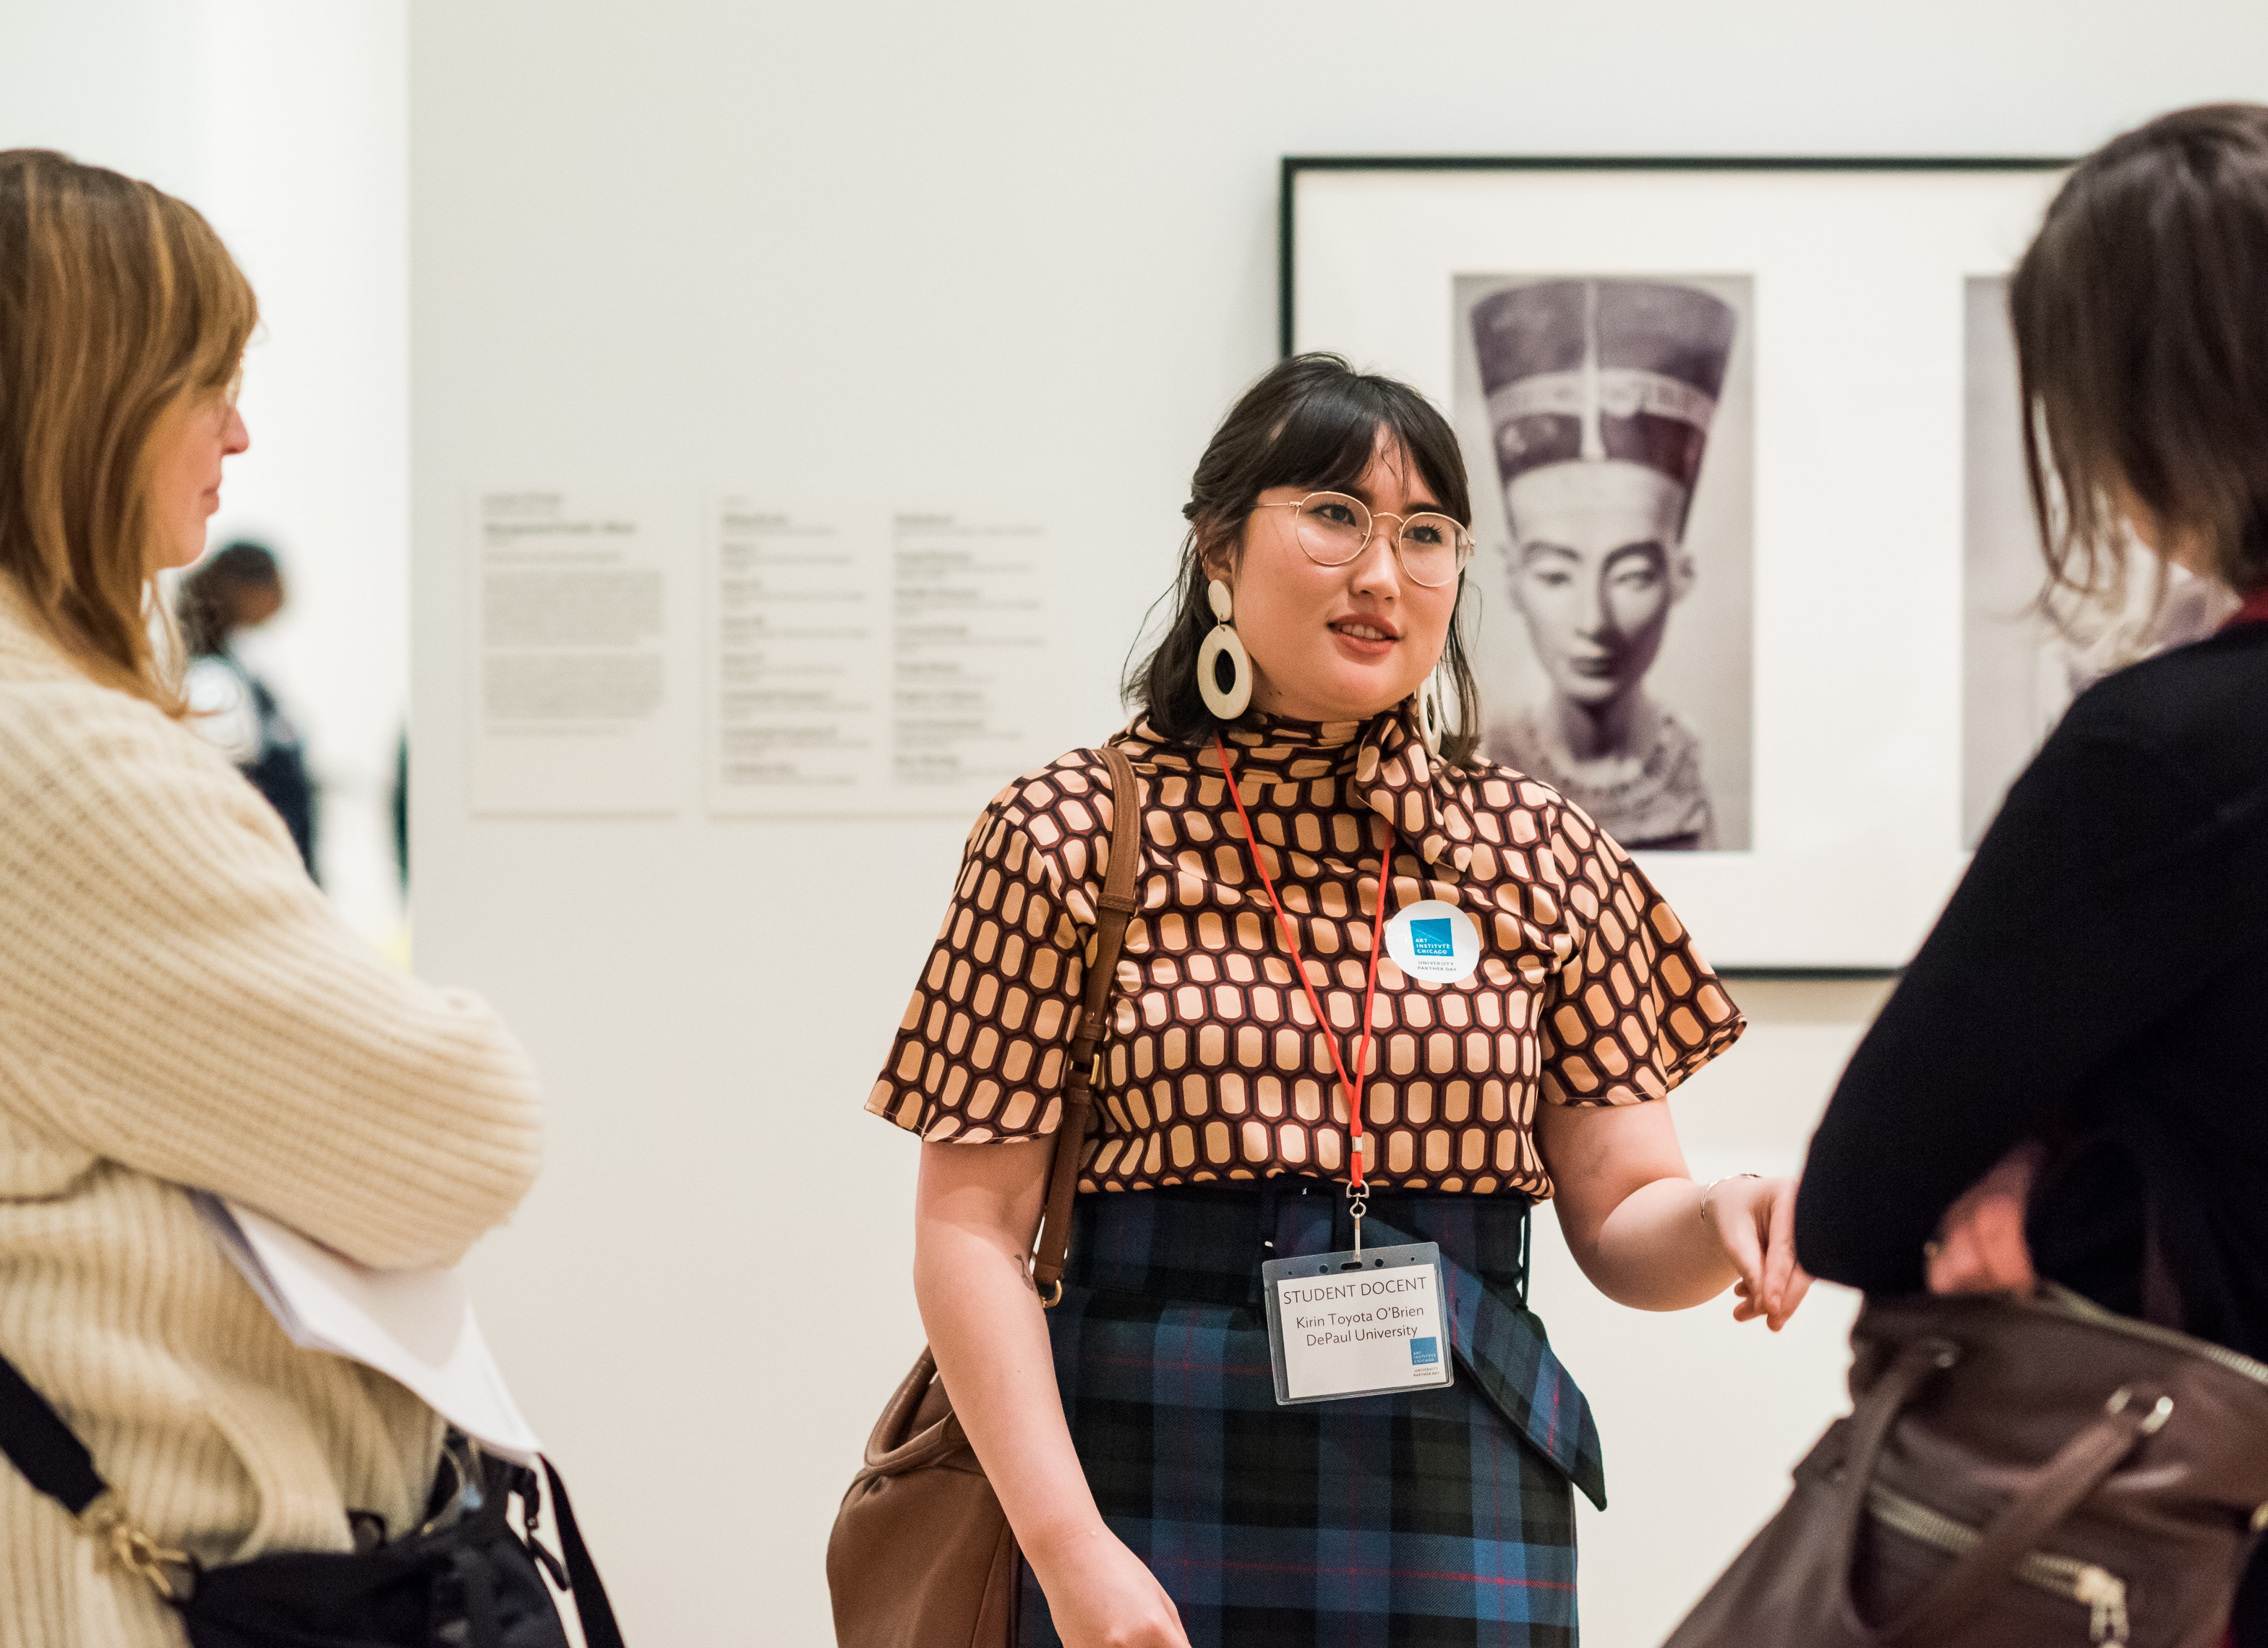 A young woman talks to two others about work in the collection.